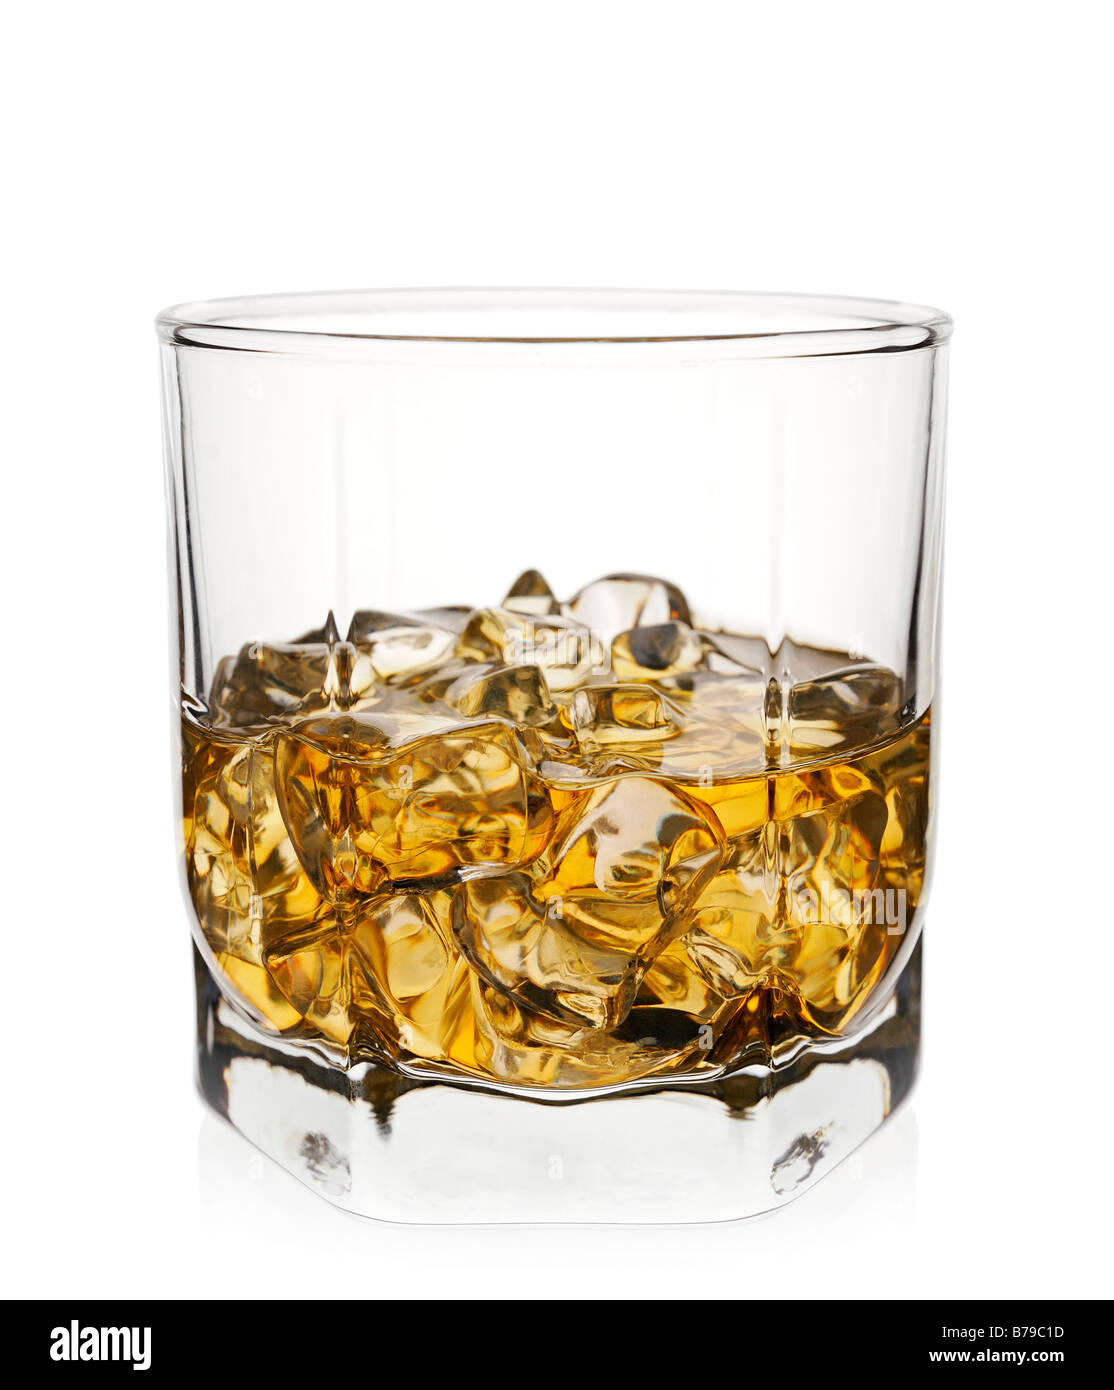 Glass of Whisky with Ice Against a White Background Close Up - Stock Image